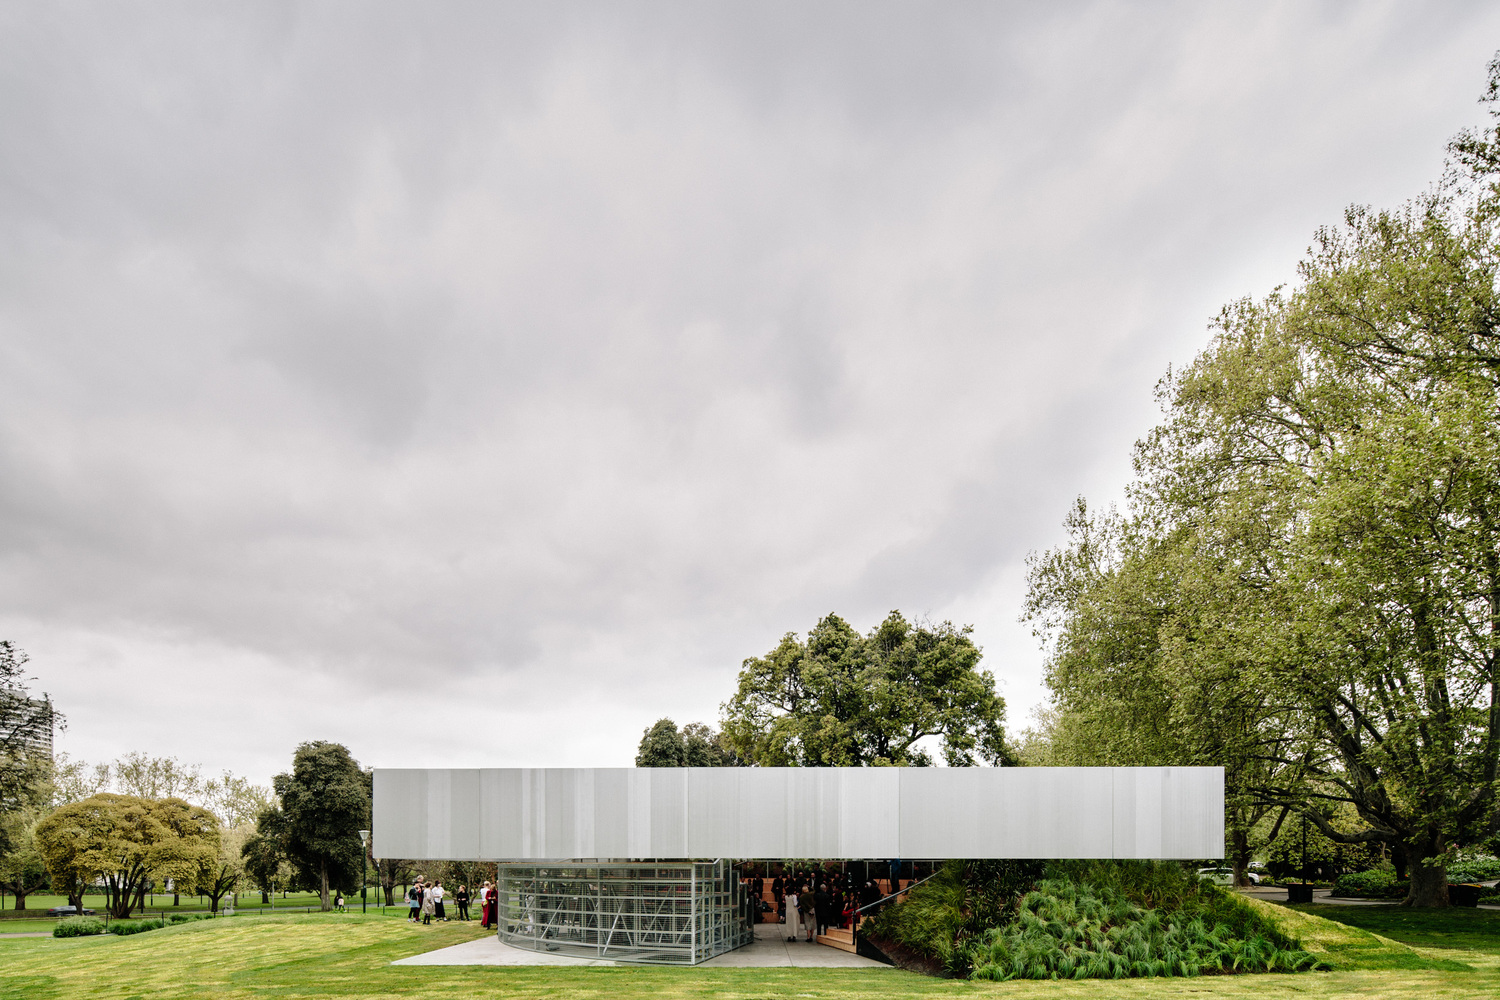 2_MPavilion_Rem Koolhaas & David Gianotten_Inspirationist